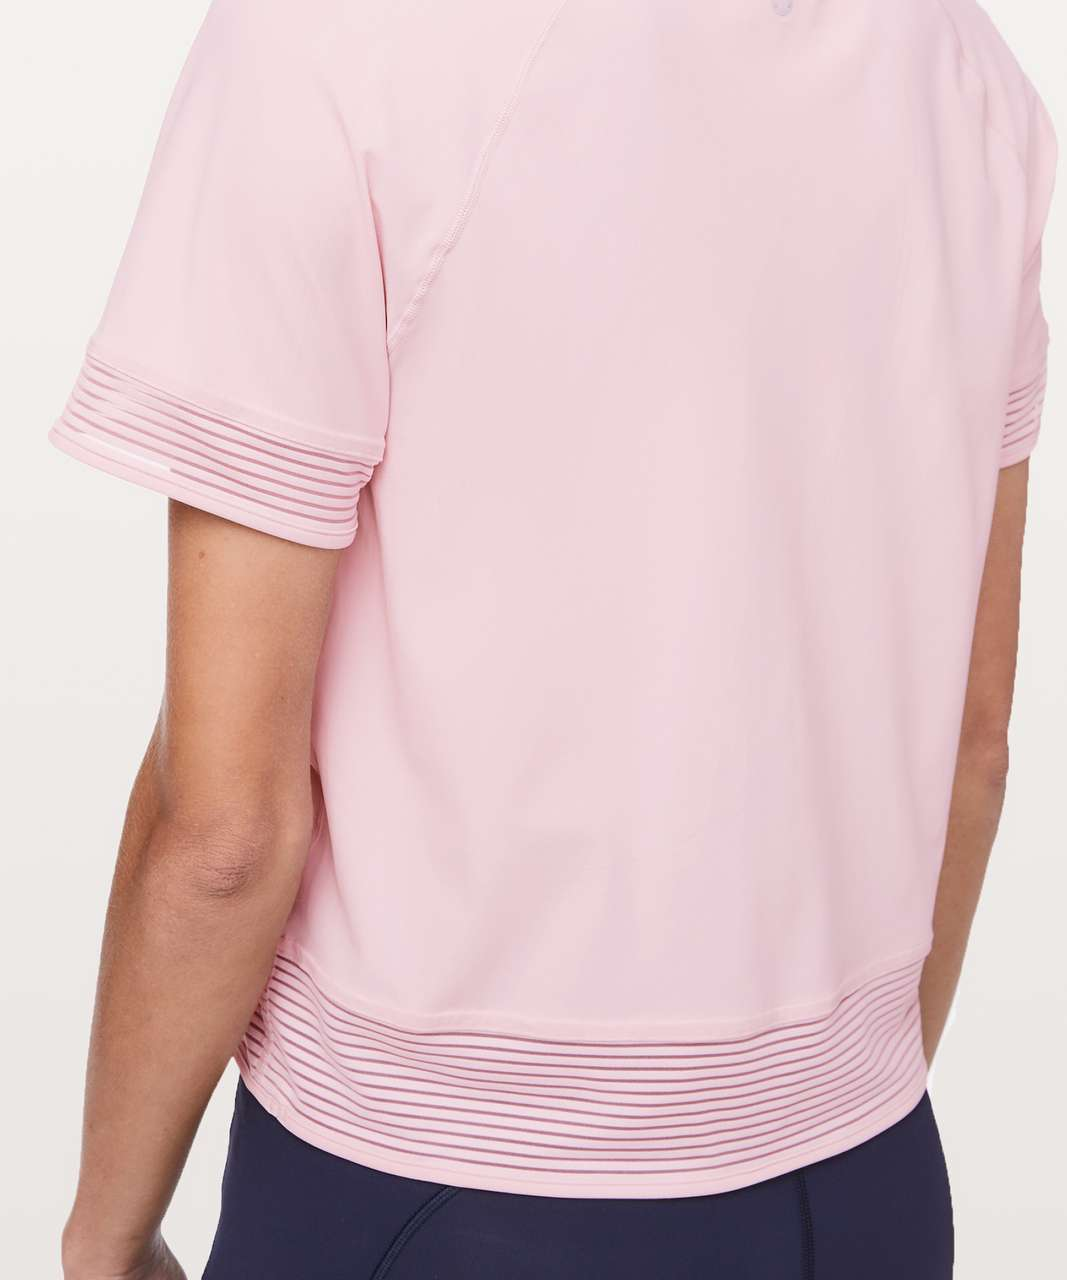 Lululemon Stripe In Stride Short Sleeve - Petals